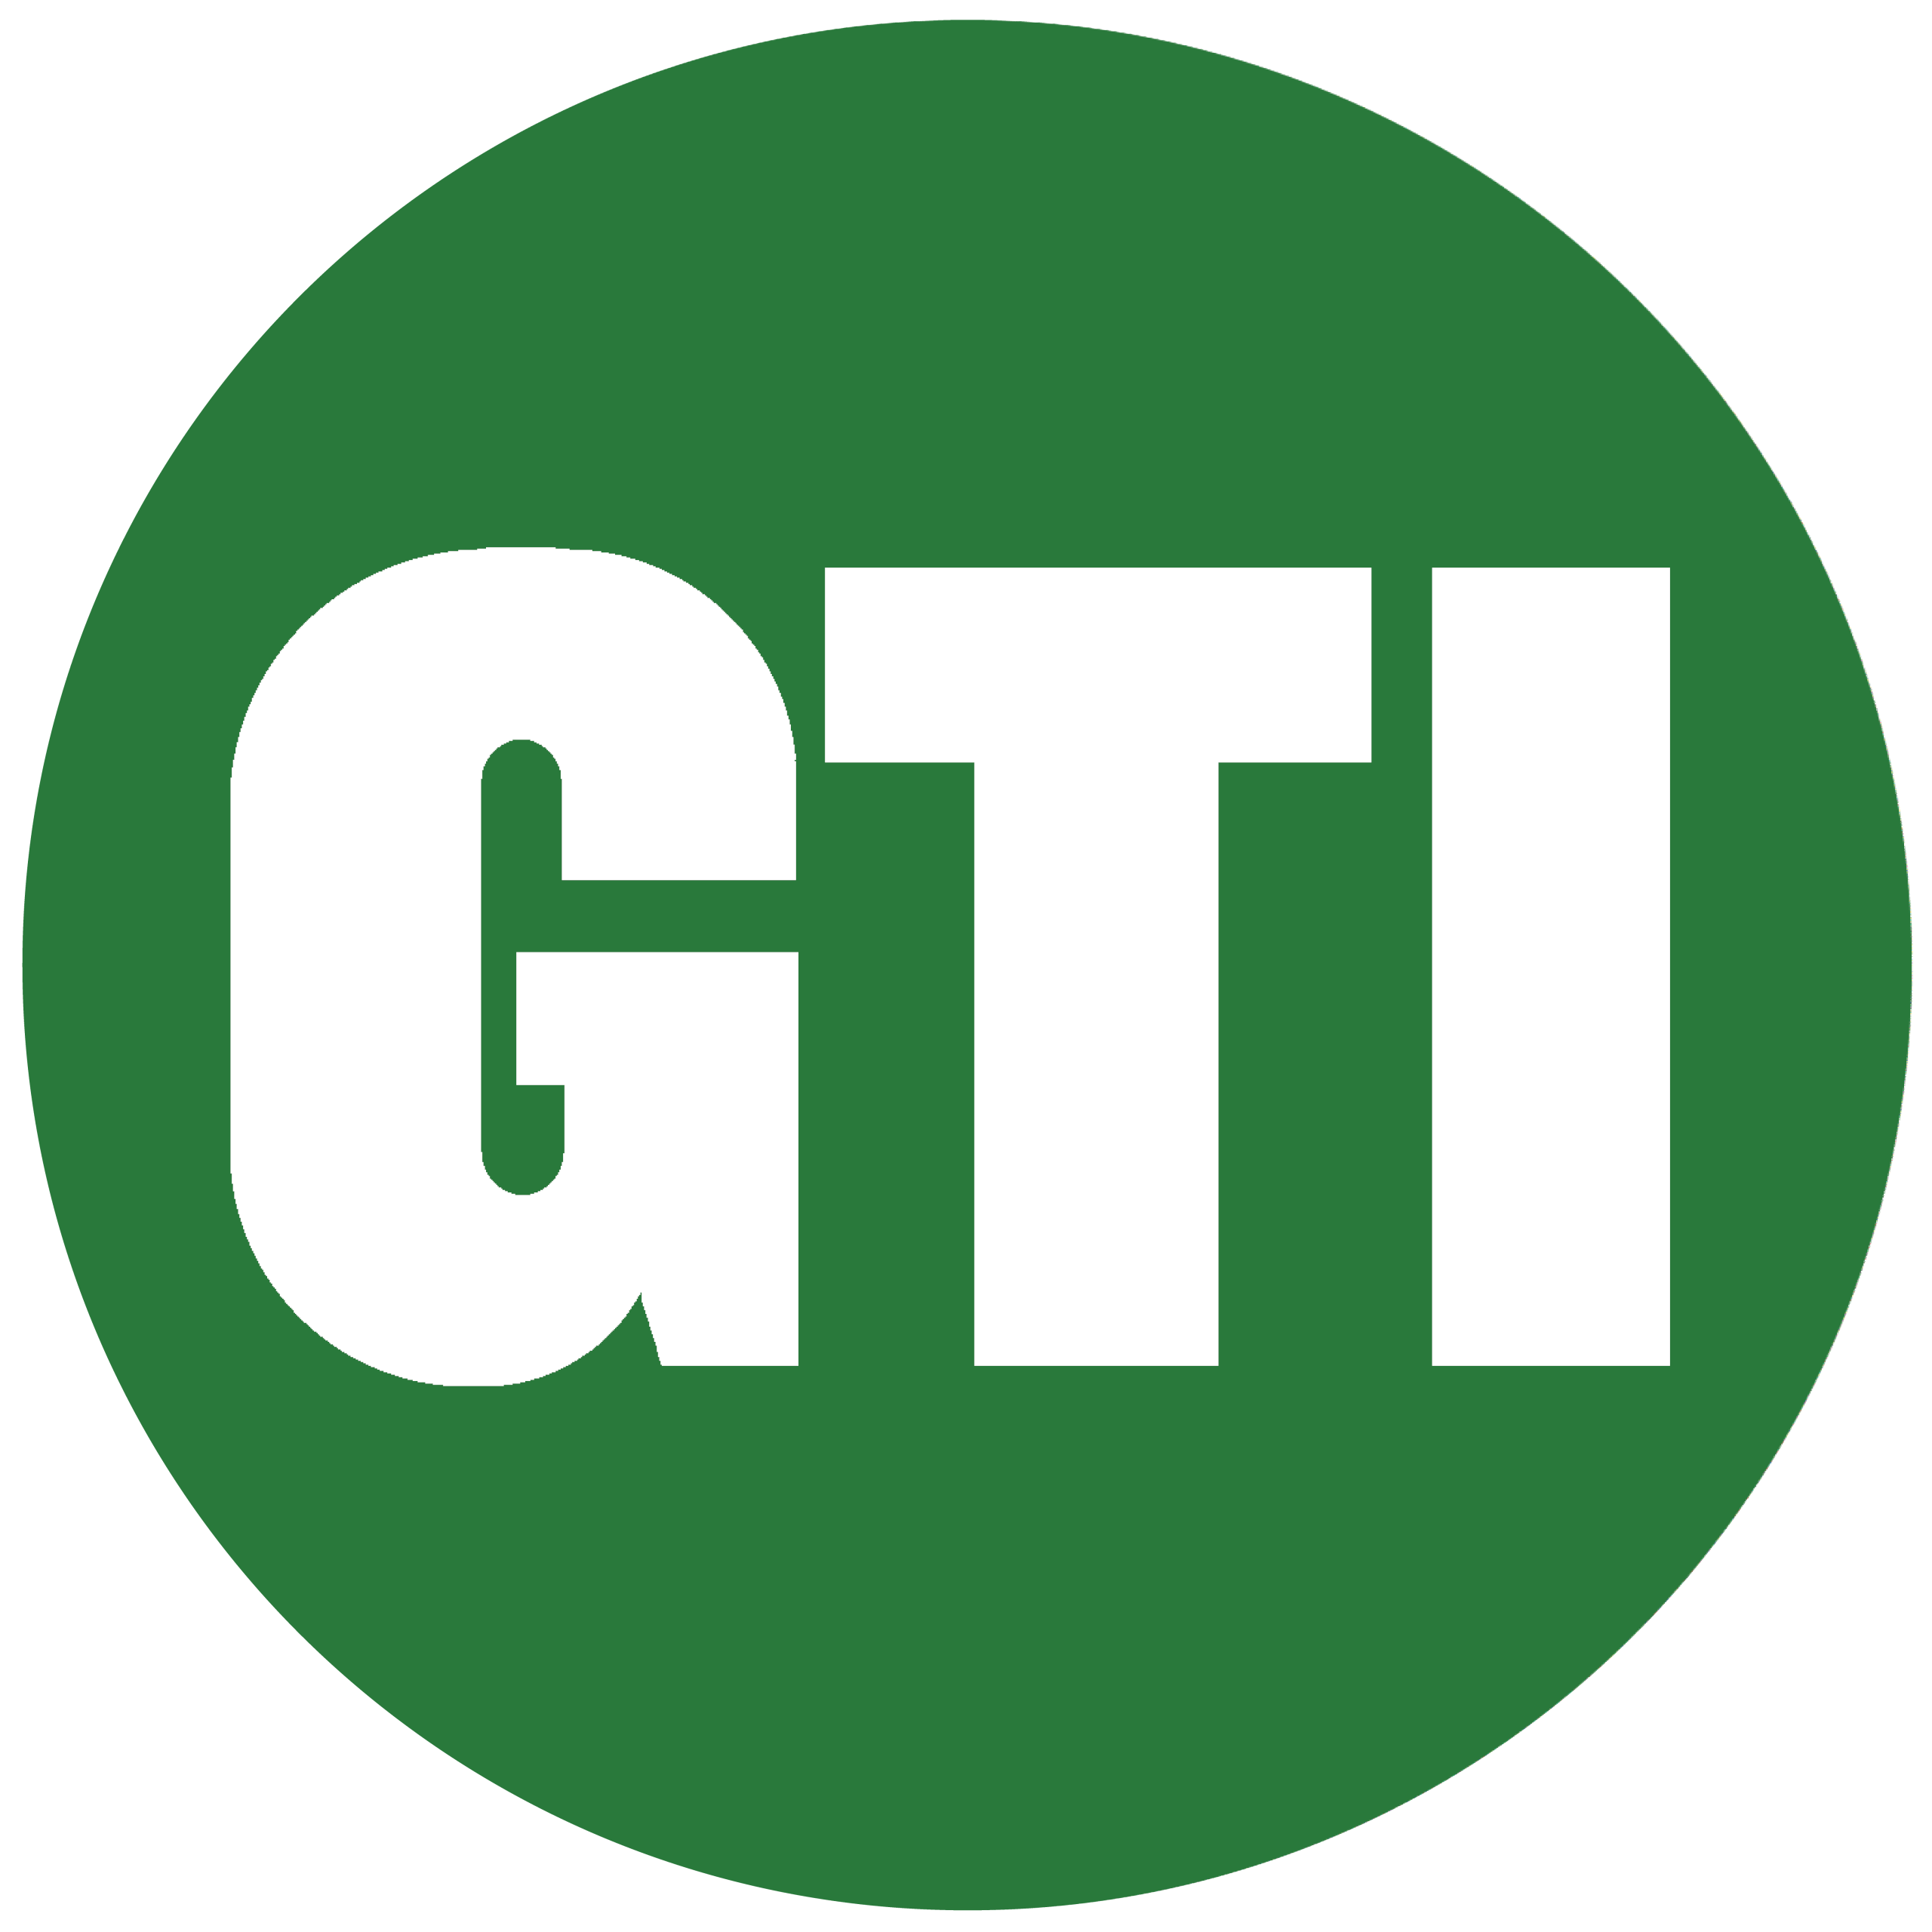 Logo for Green Thumb Industries (GTI)